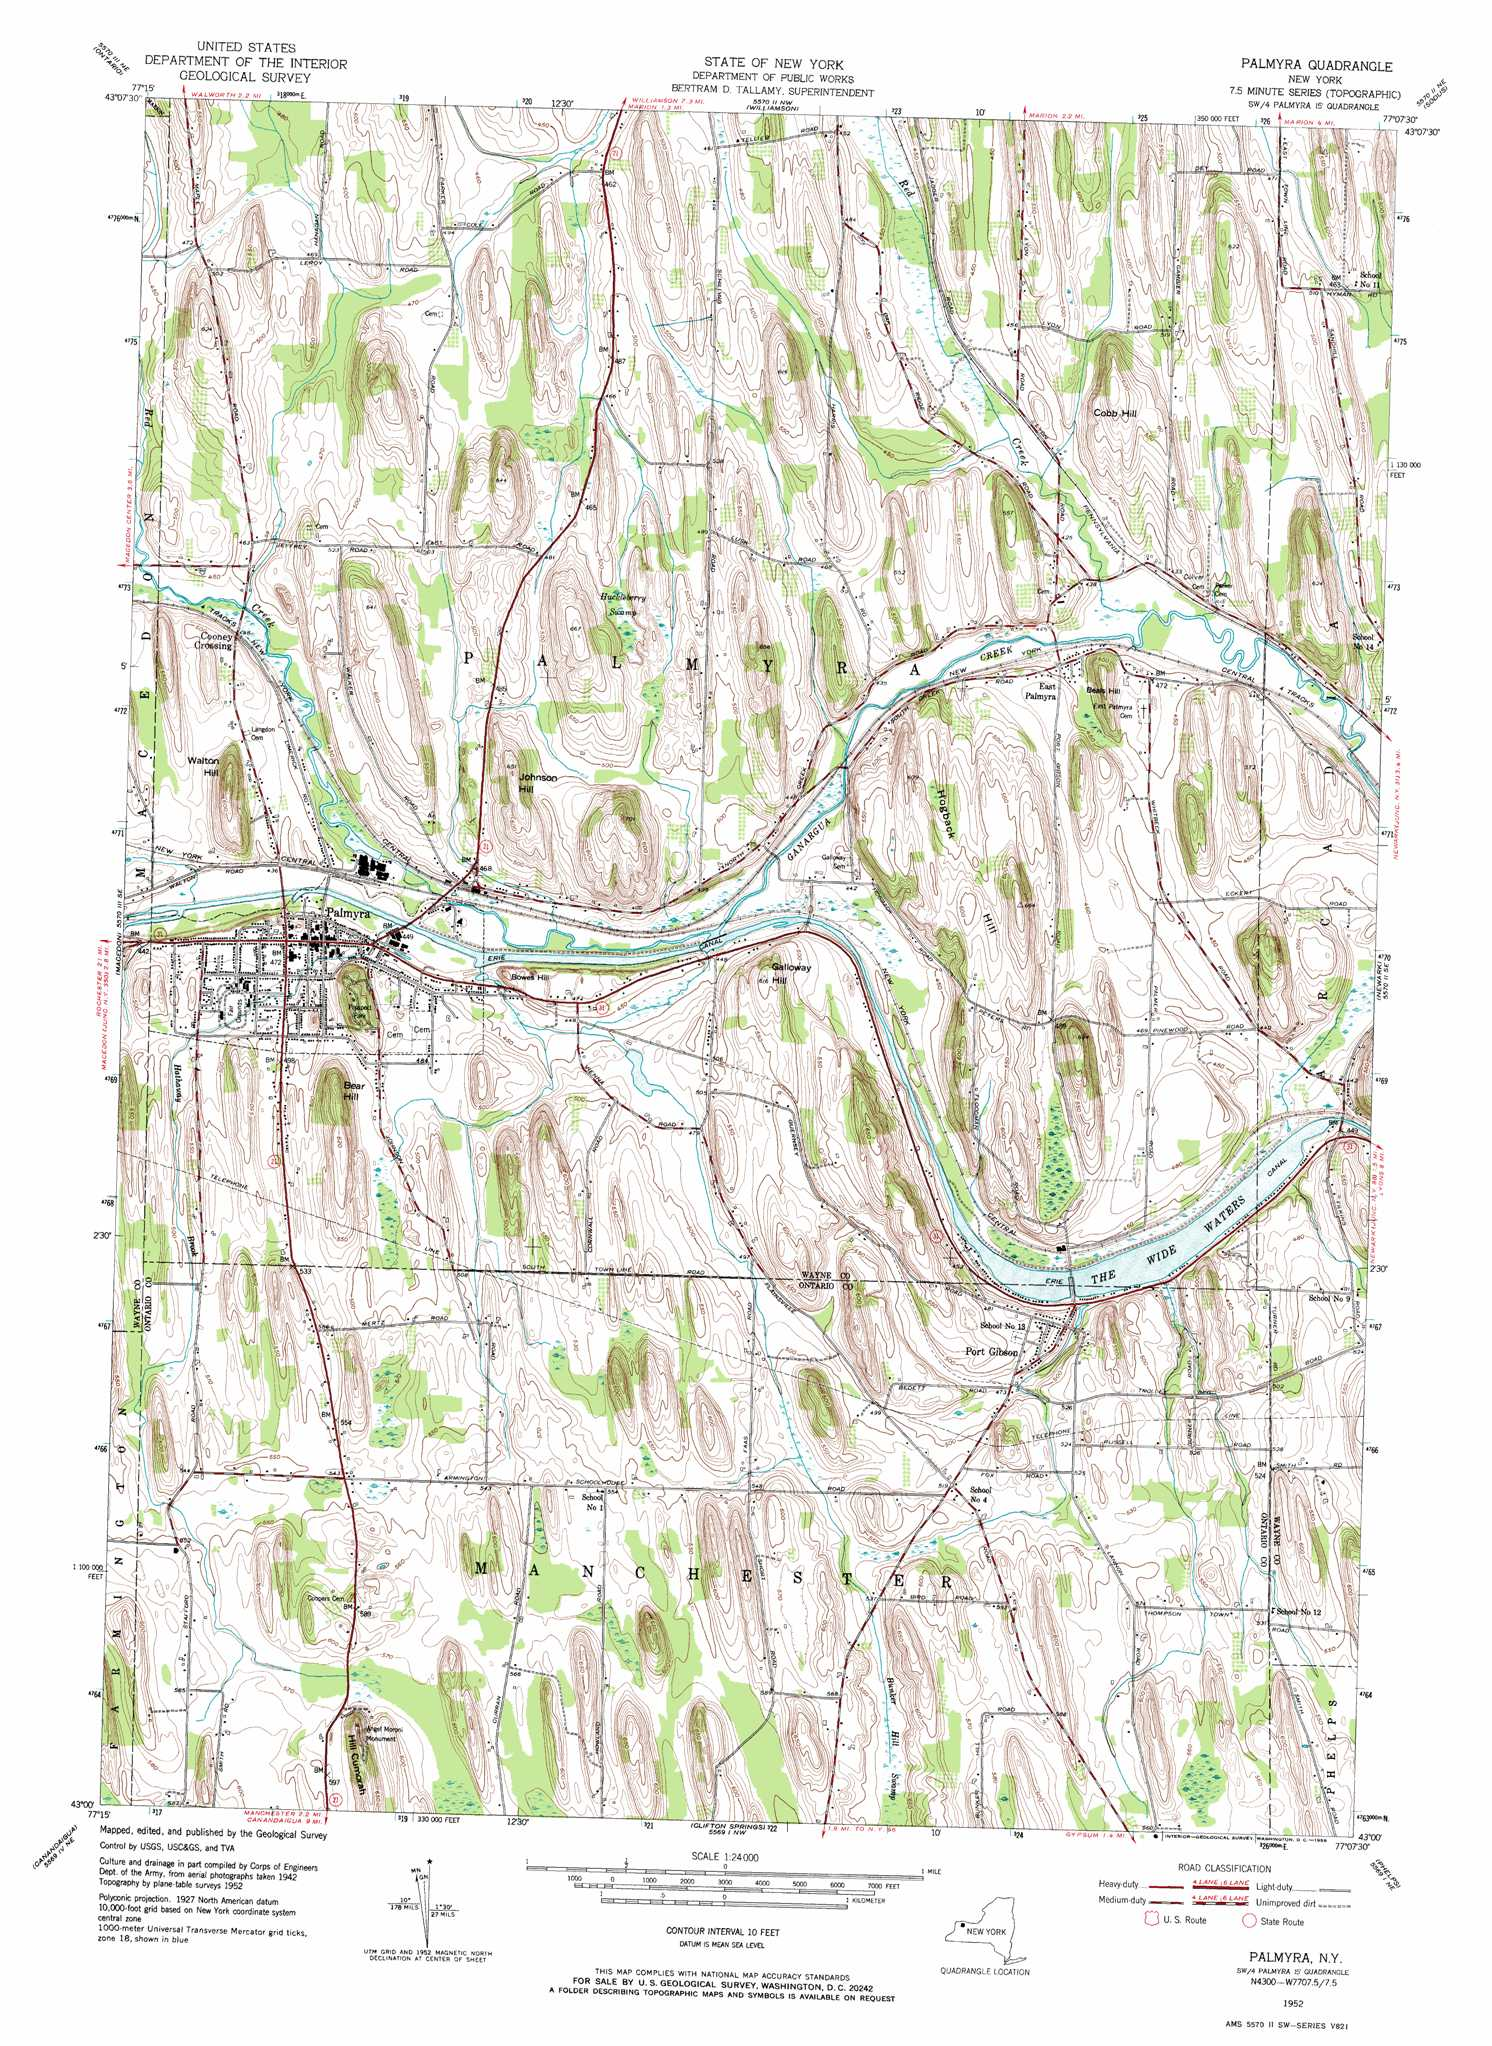 Acres For Sale In Oneida County New York NY LandQuest Freight - Washington dc pyramid map